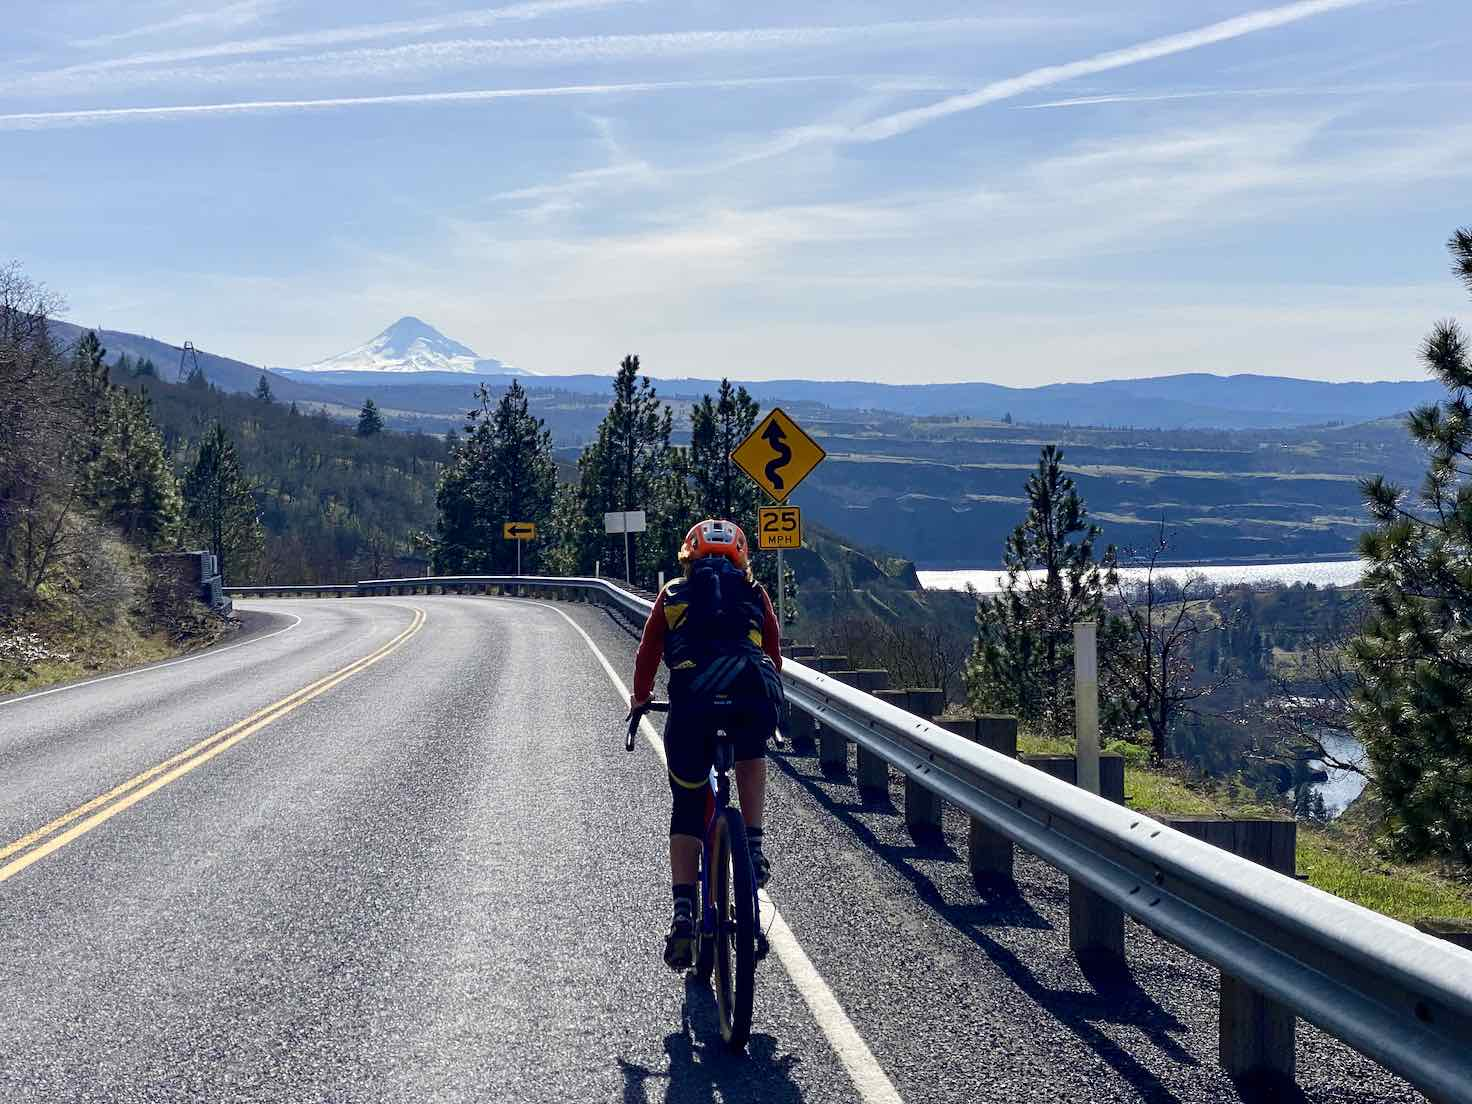 Expansive view from cyclists perspective as descending the Highway 142.